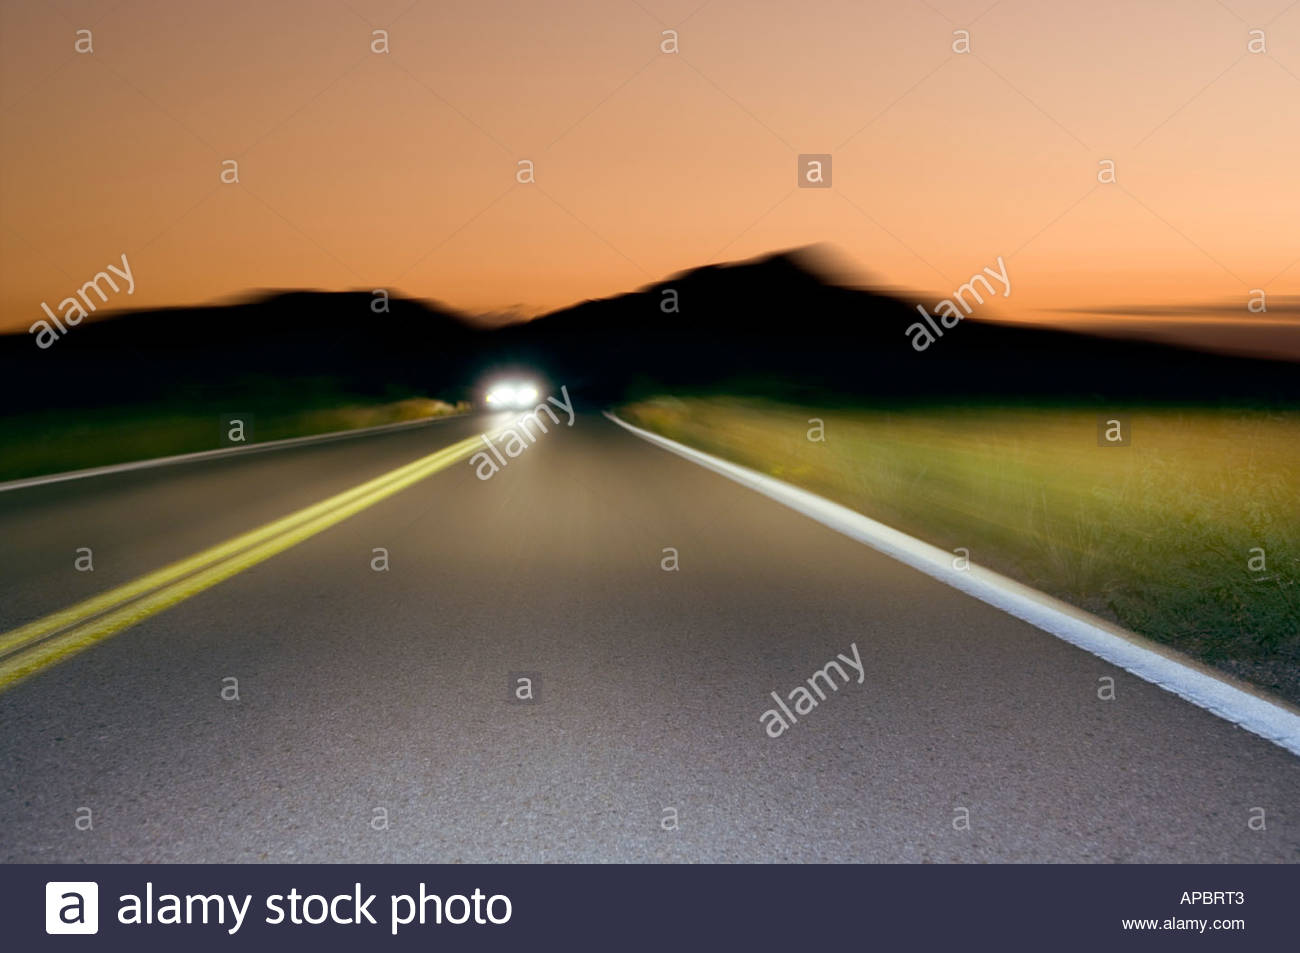 Driving on desert highway at night, dusk, west of  Tucson Arizona Drivers point of View oncoming traffic car headlights - Stock Image